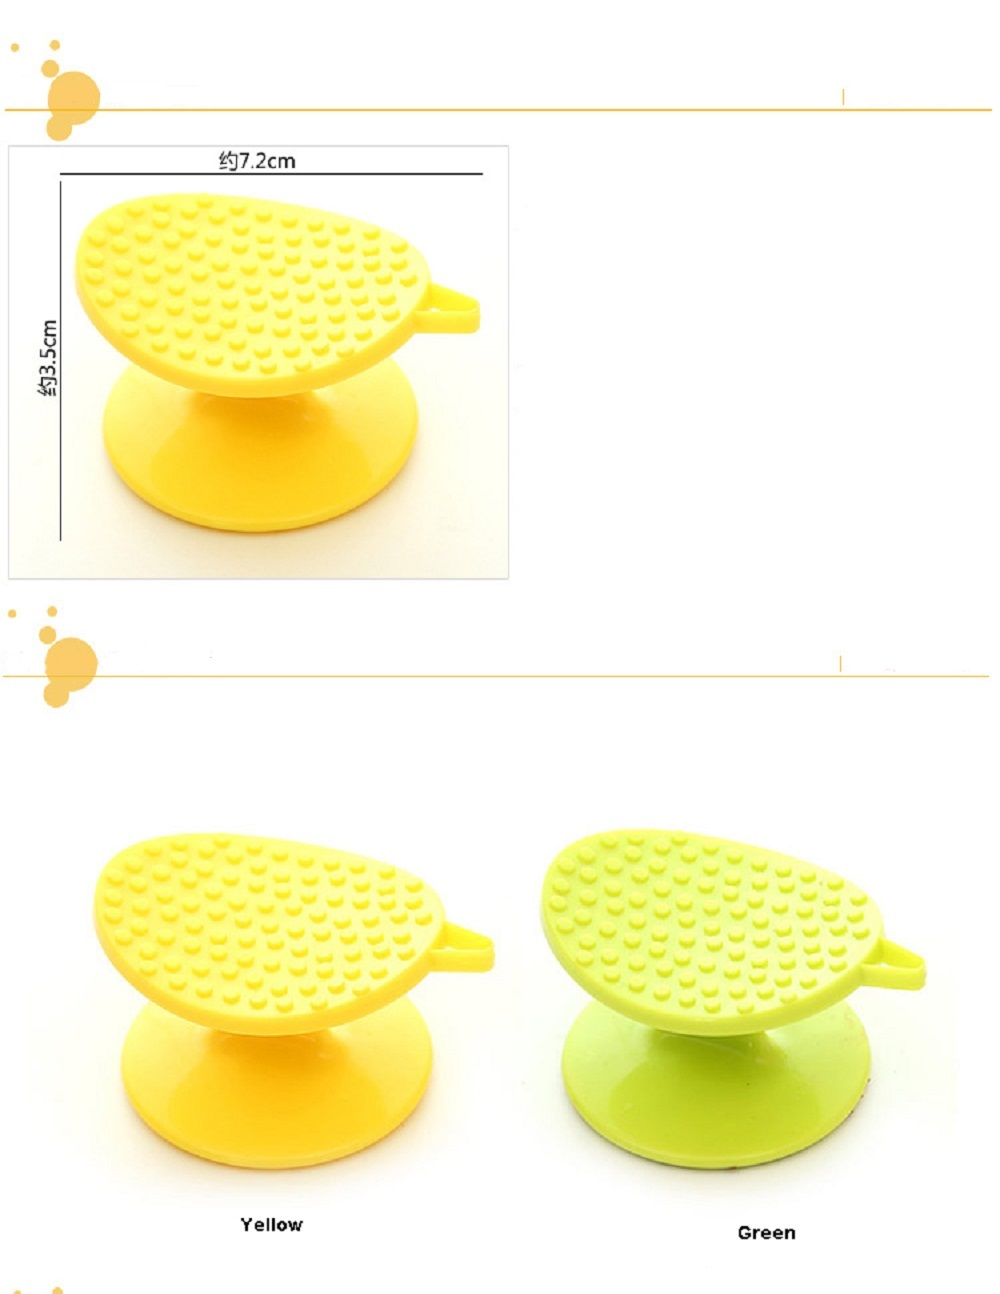 Multifunctional Radish Potatoes Peeled Fruit and Vegetable Clean Brush Scraper Scales Kitchenware Gadgets